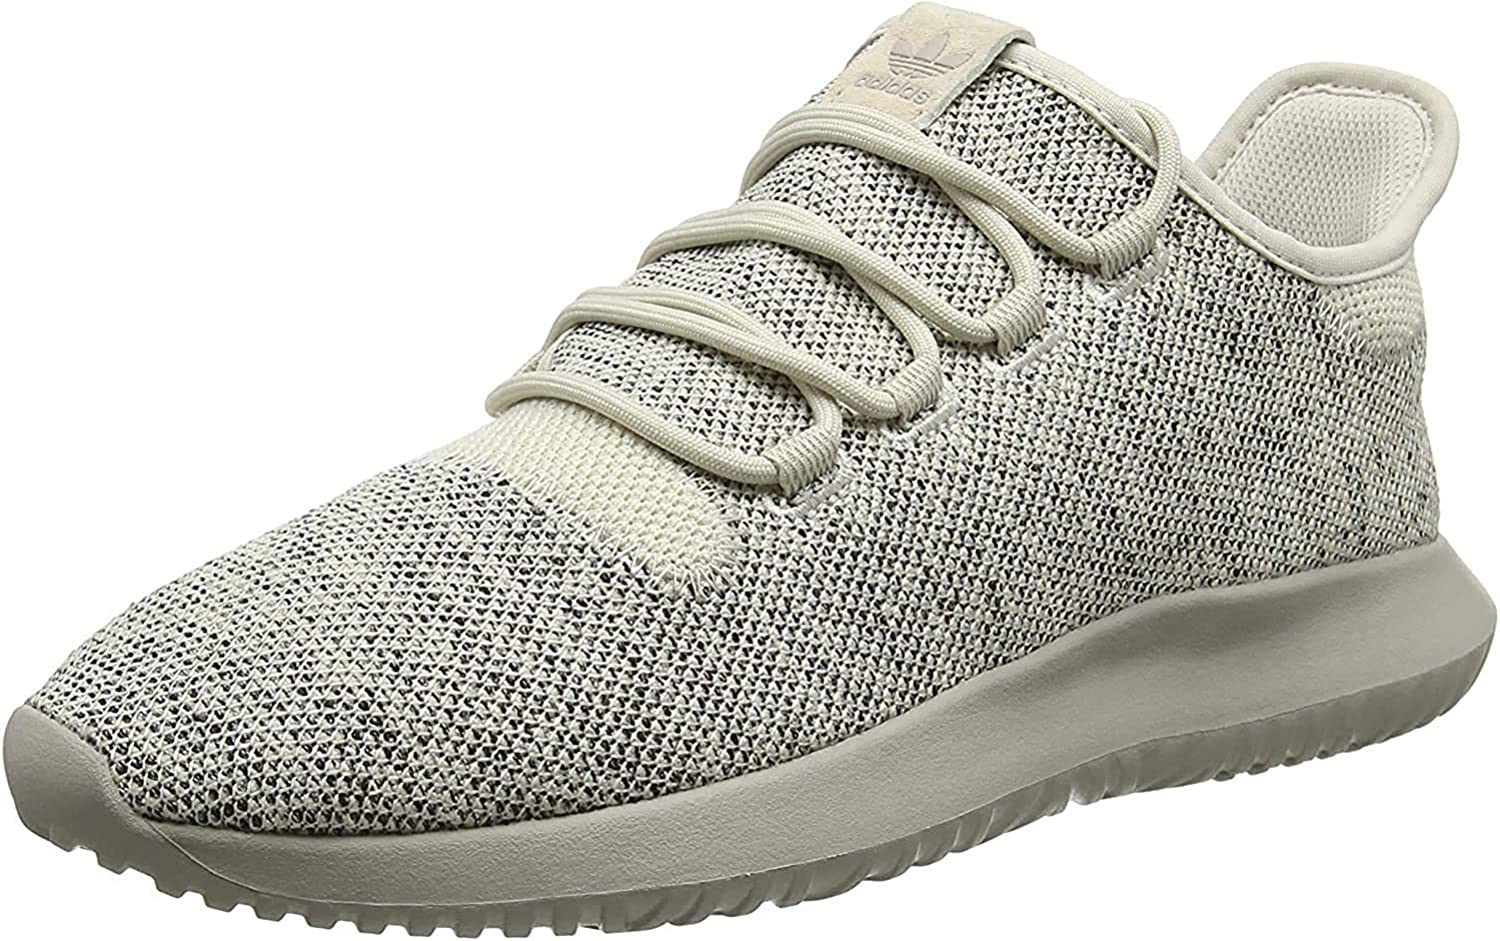 Adidas Tubular Shadow Knit Top Sellers, UP TO 56% OFF